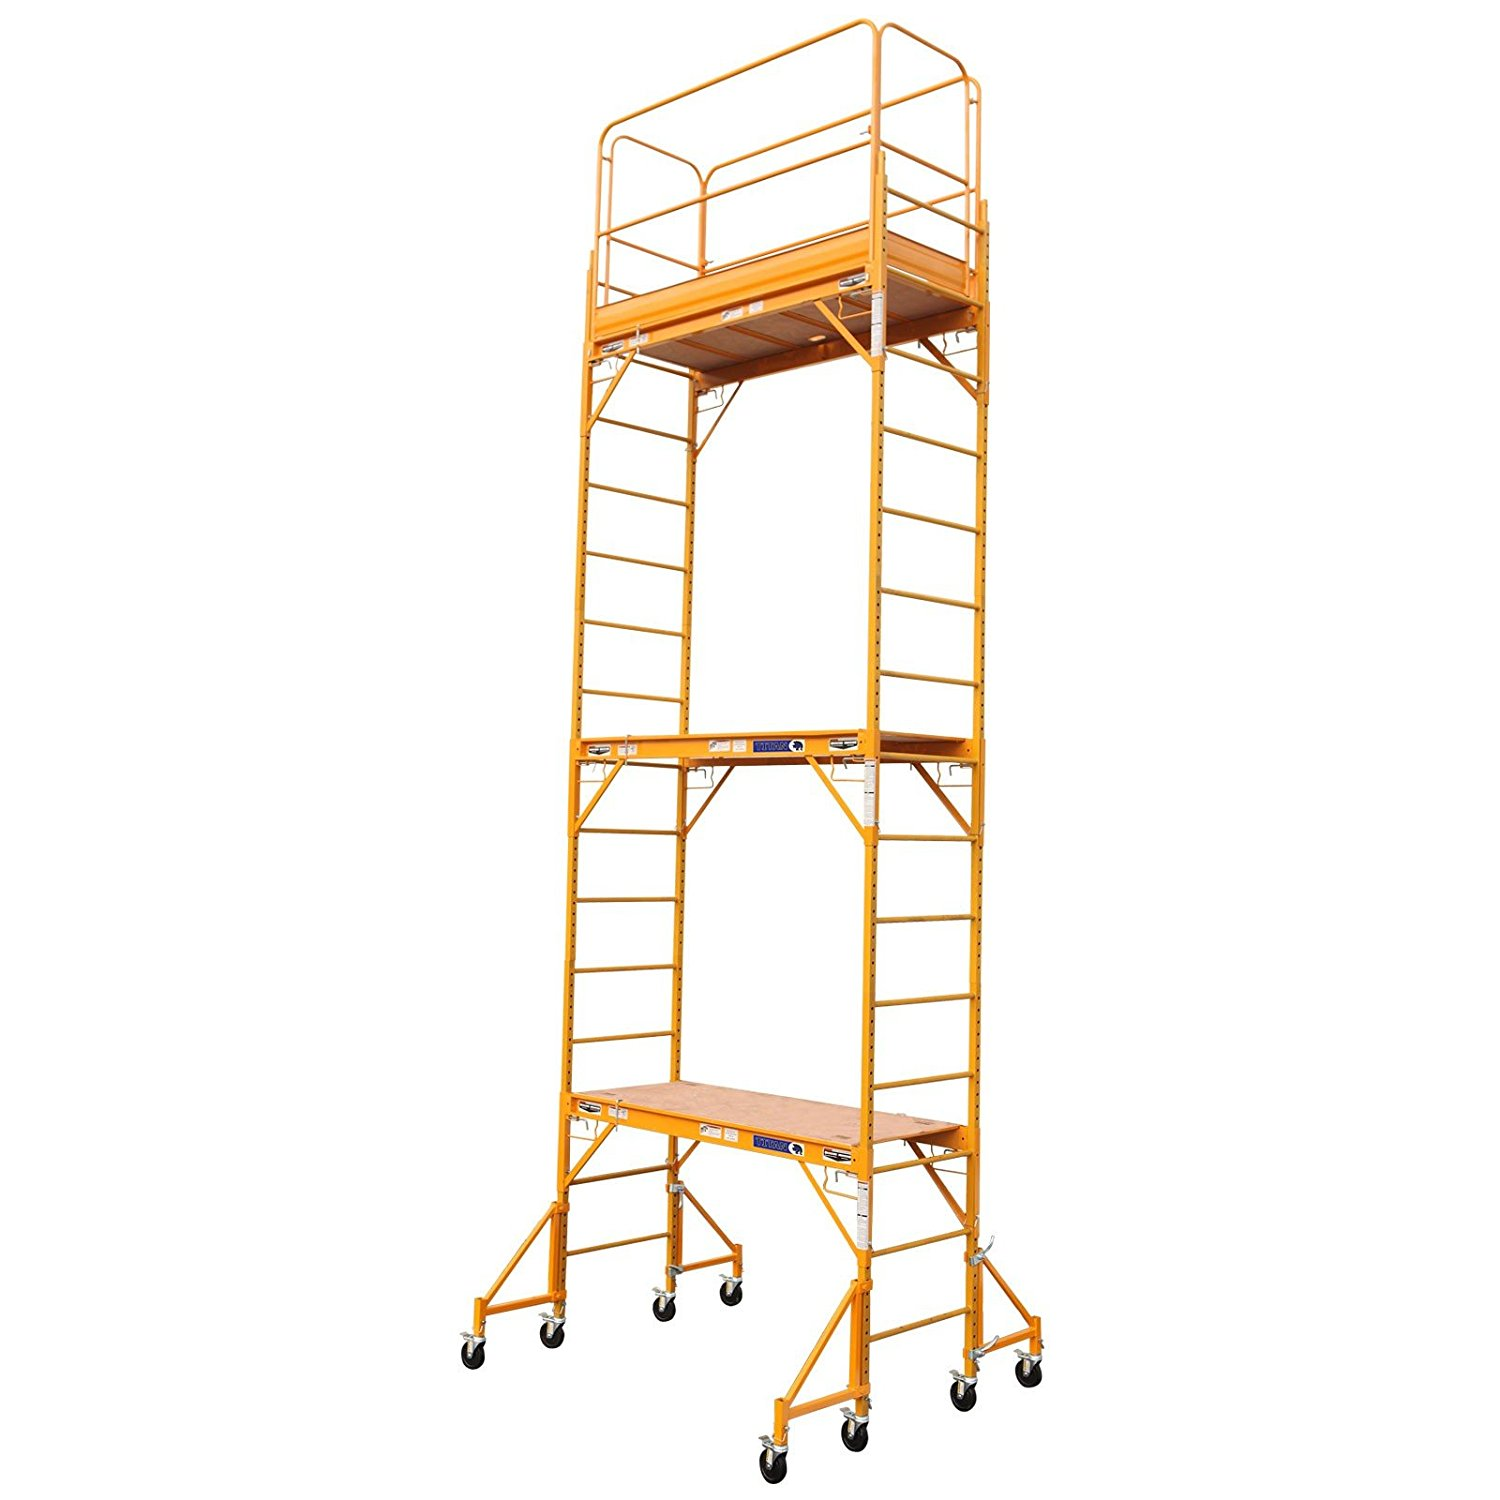 30 Foot Scaffolding : Scaffolding ft height w guard rail outriggers build